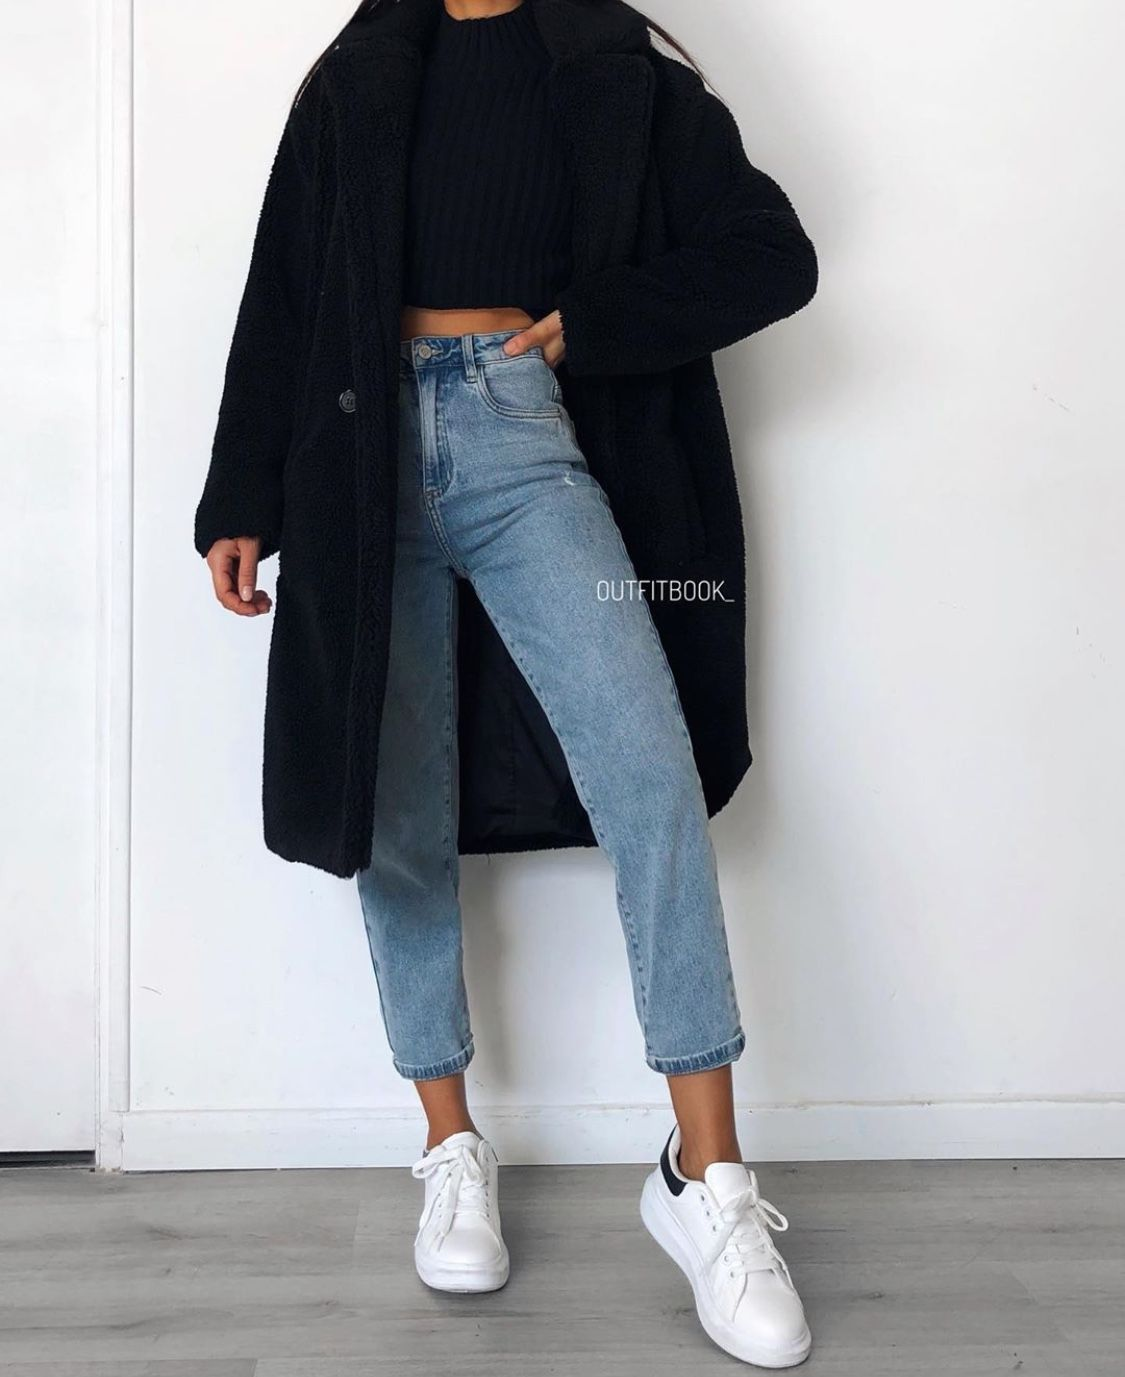 Photo of outfitbook